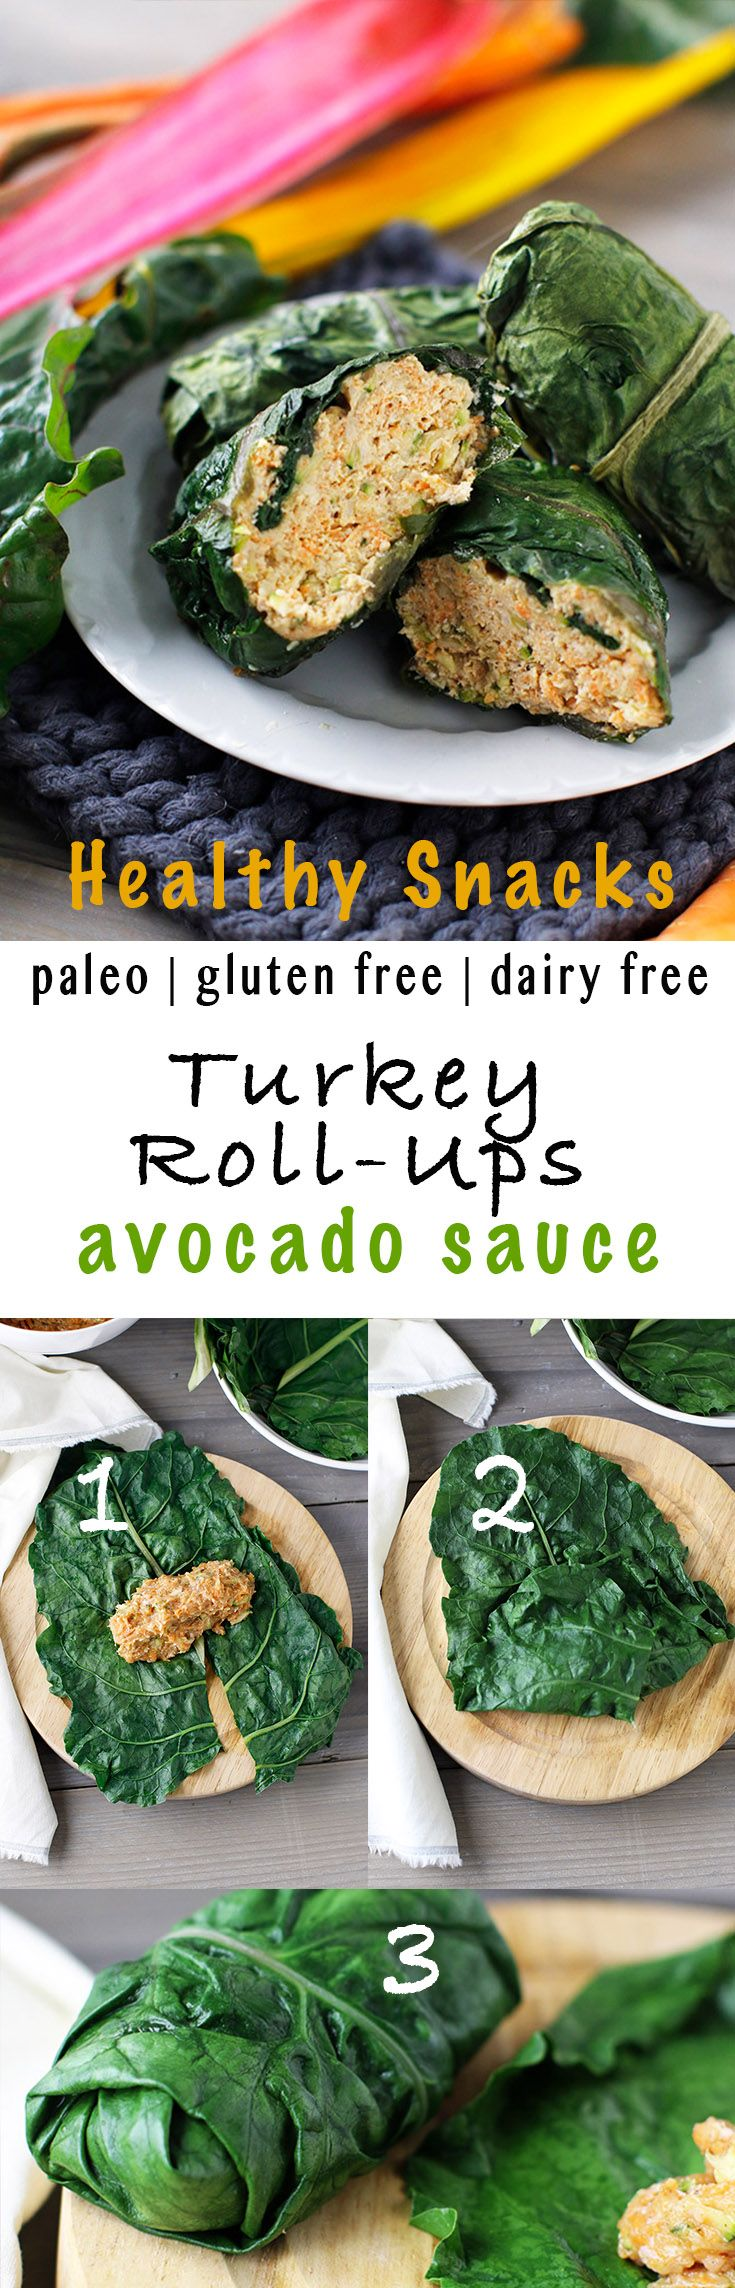 Turkey roll-ups wrapped in chard leaves and stuffed with shredded carrots, zucchini and seasoned with Asian flavors! Then served with a creamy avocado dipping sauce.